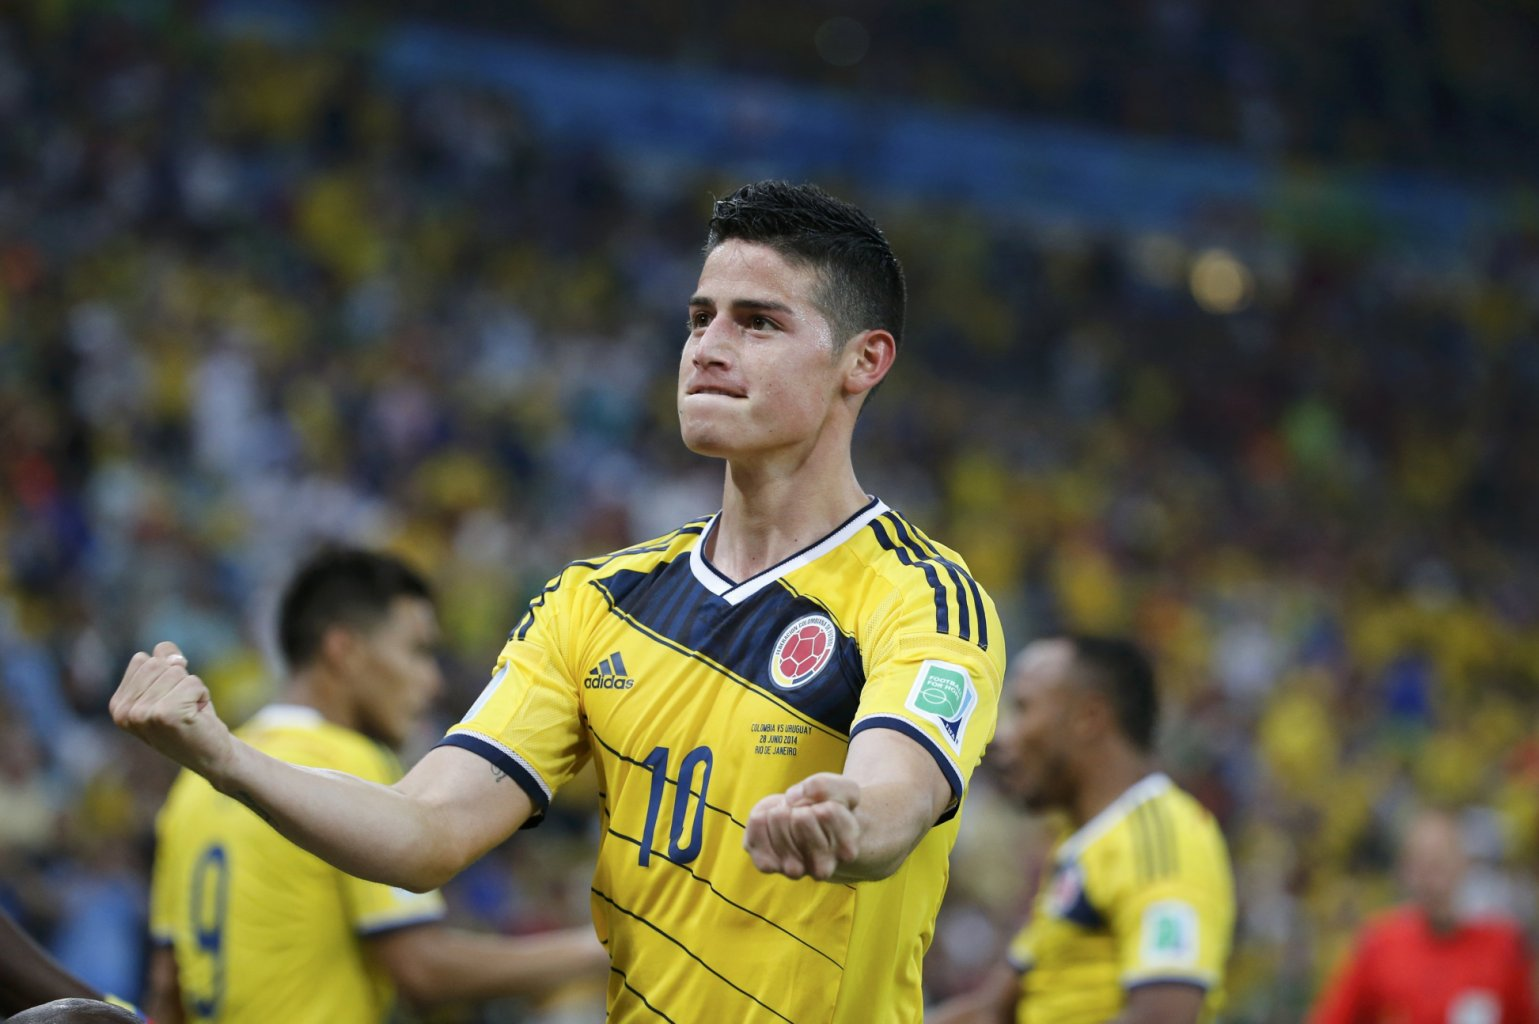 James Rodríguez, the FIFA World Cup 2014 top sccorer